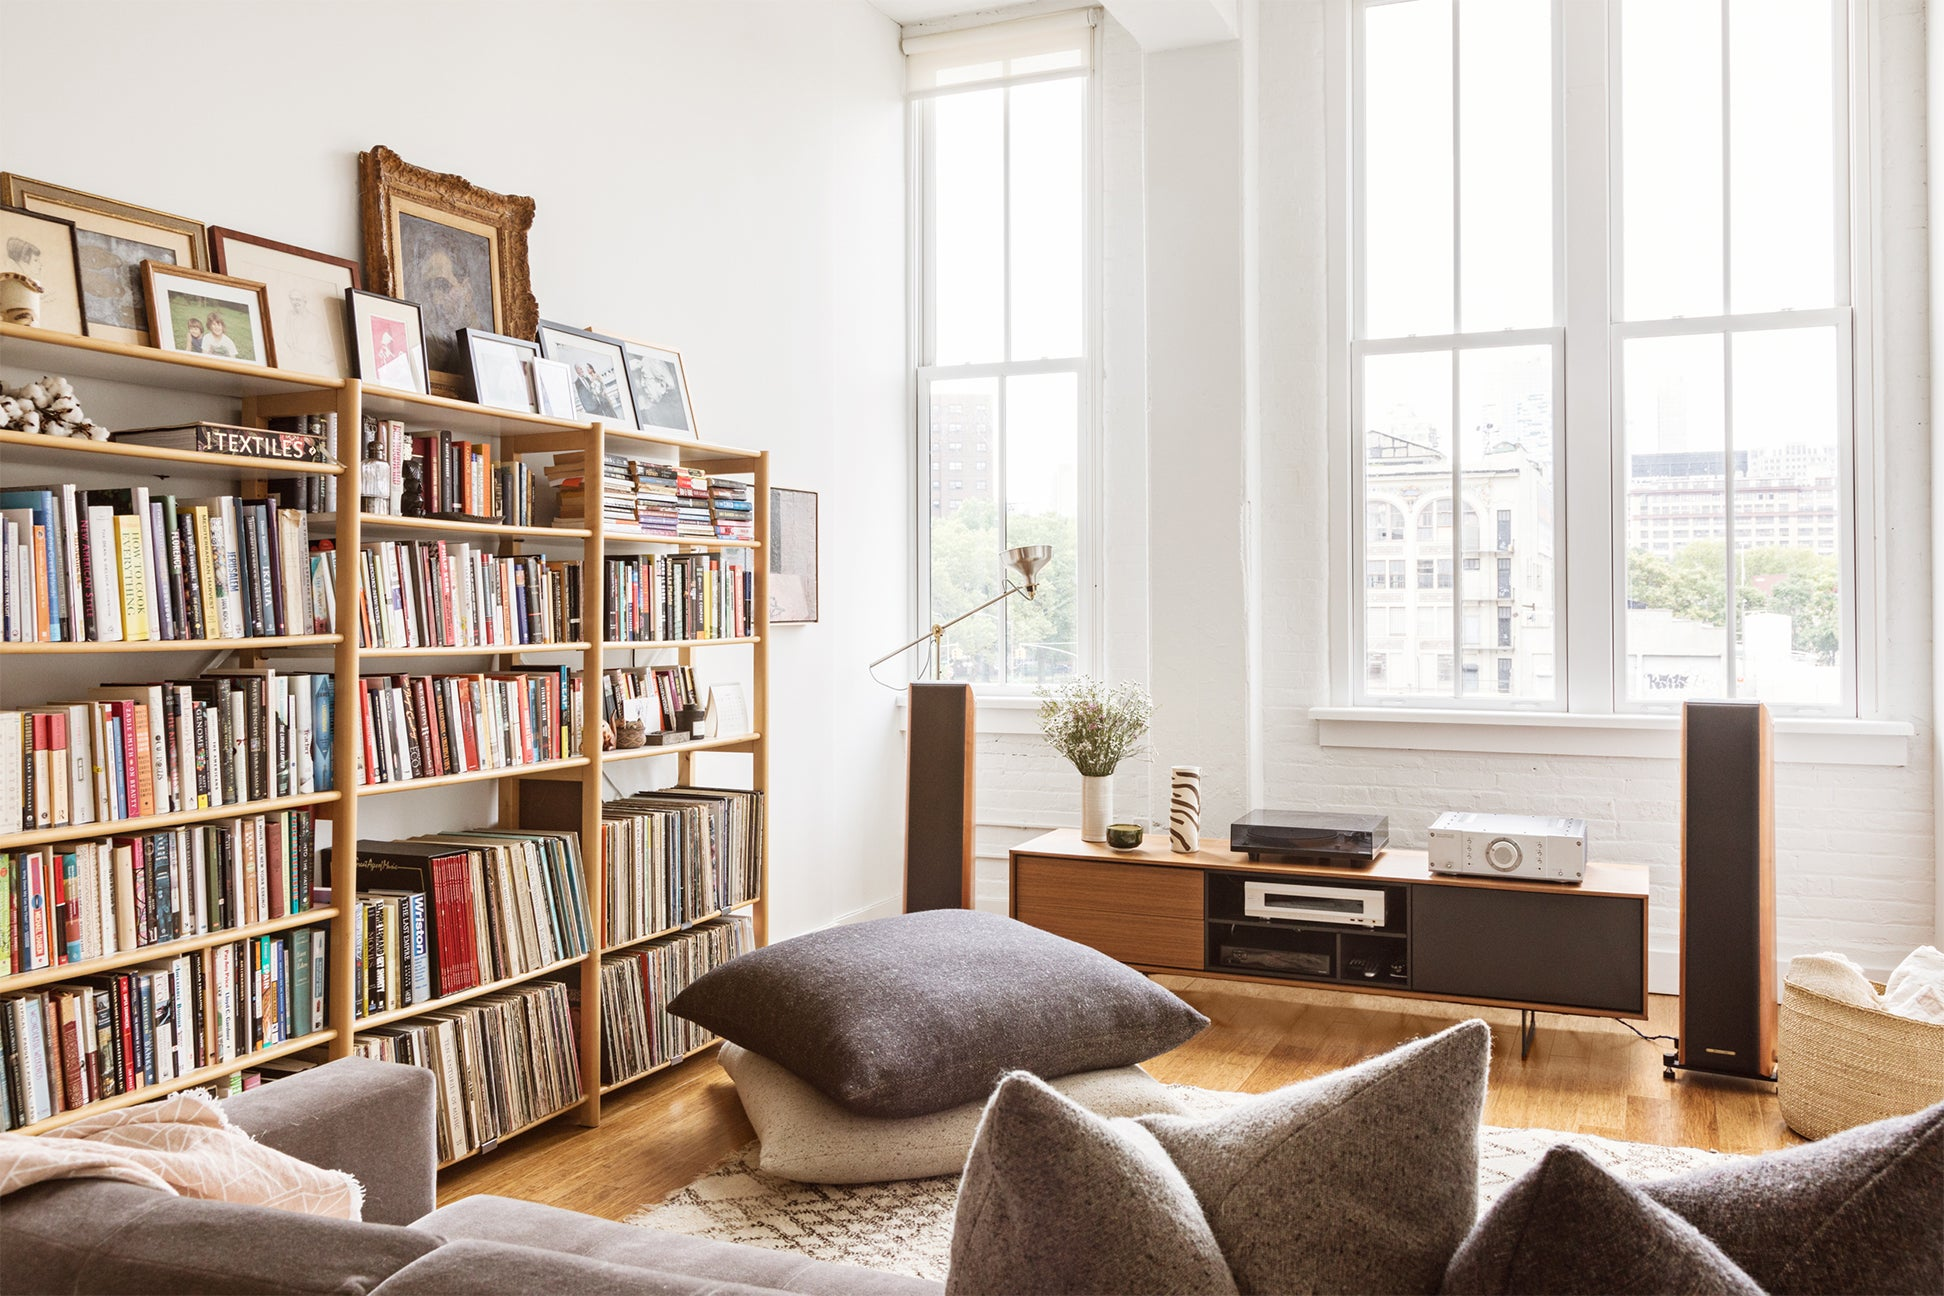 Small living room with floor pillows and bookcase